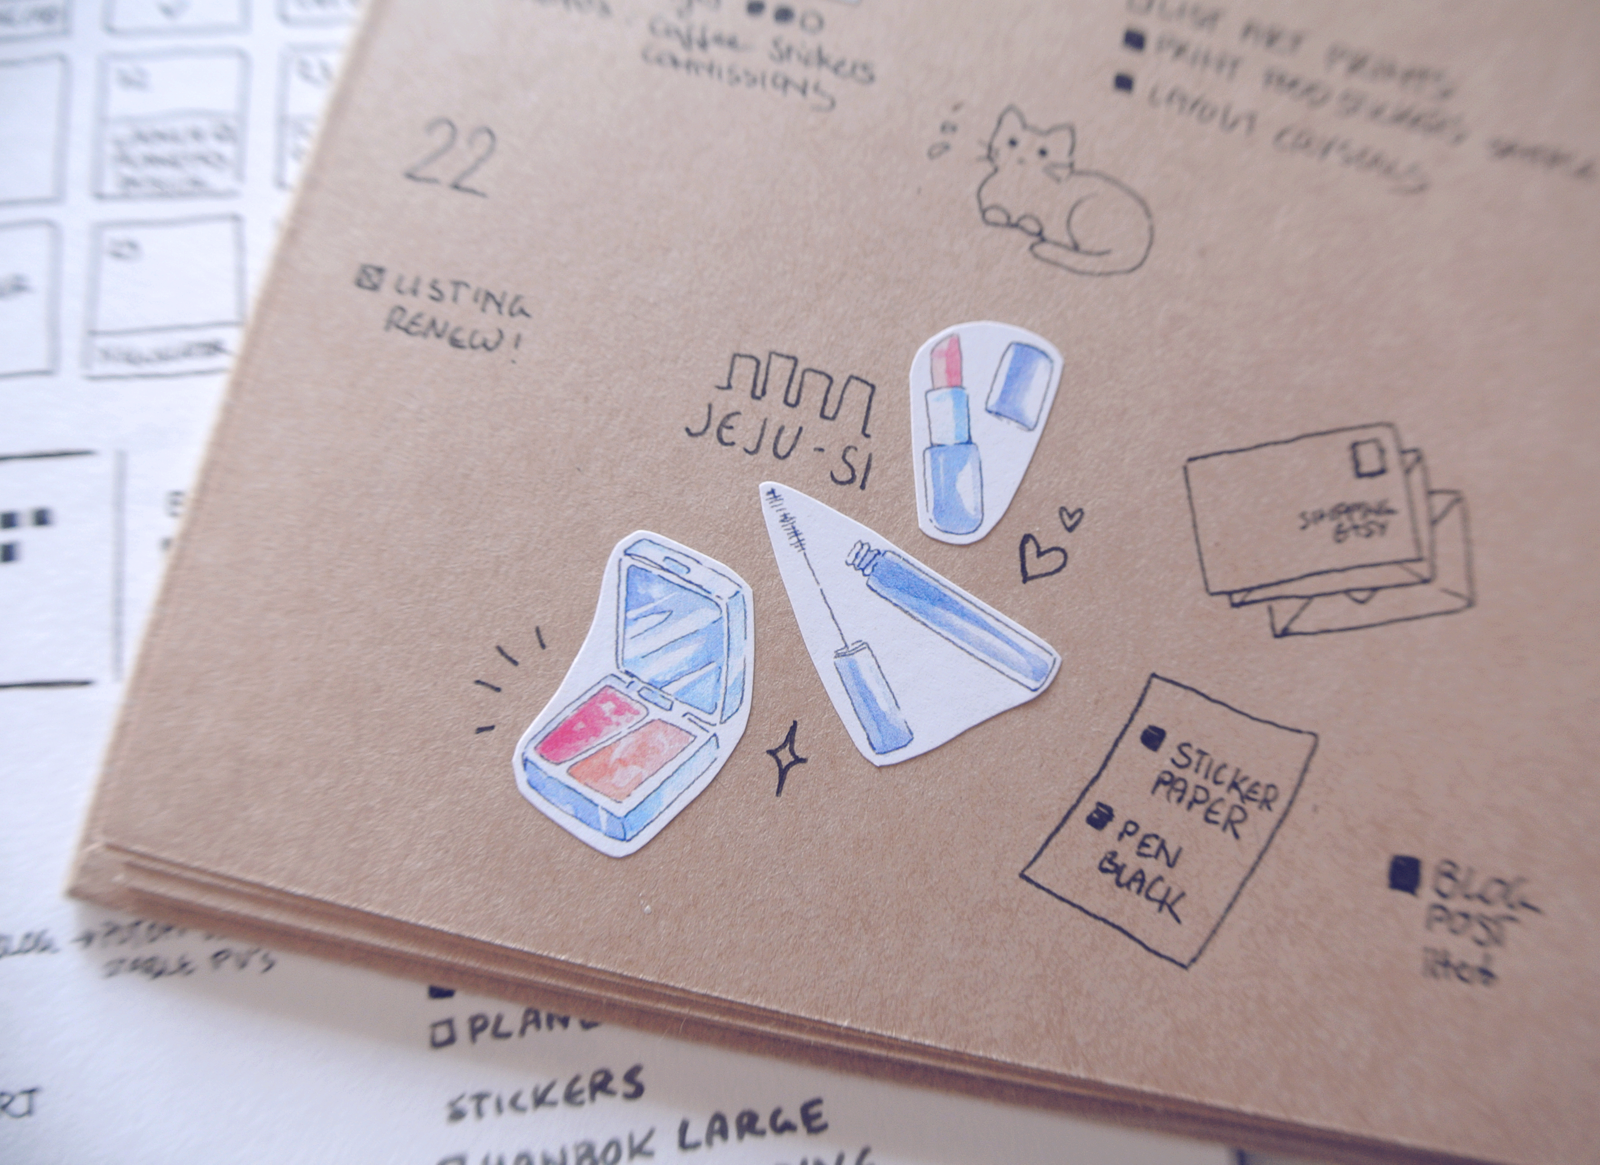 More sticker decorations. These fit well with free time - perfect to replace elaborate to-do lists.